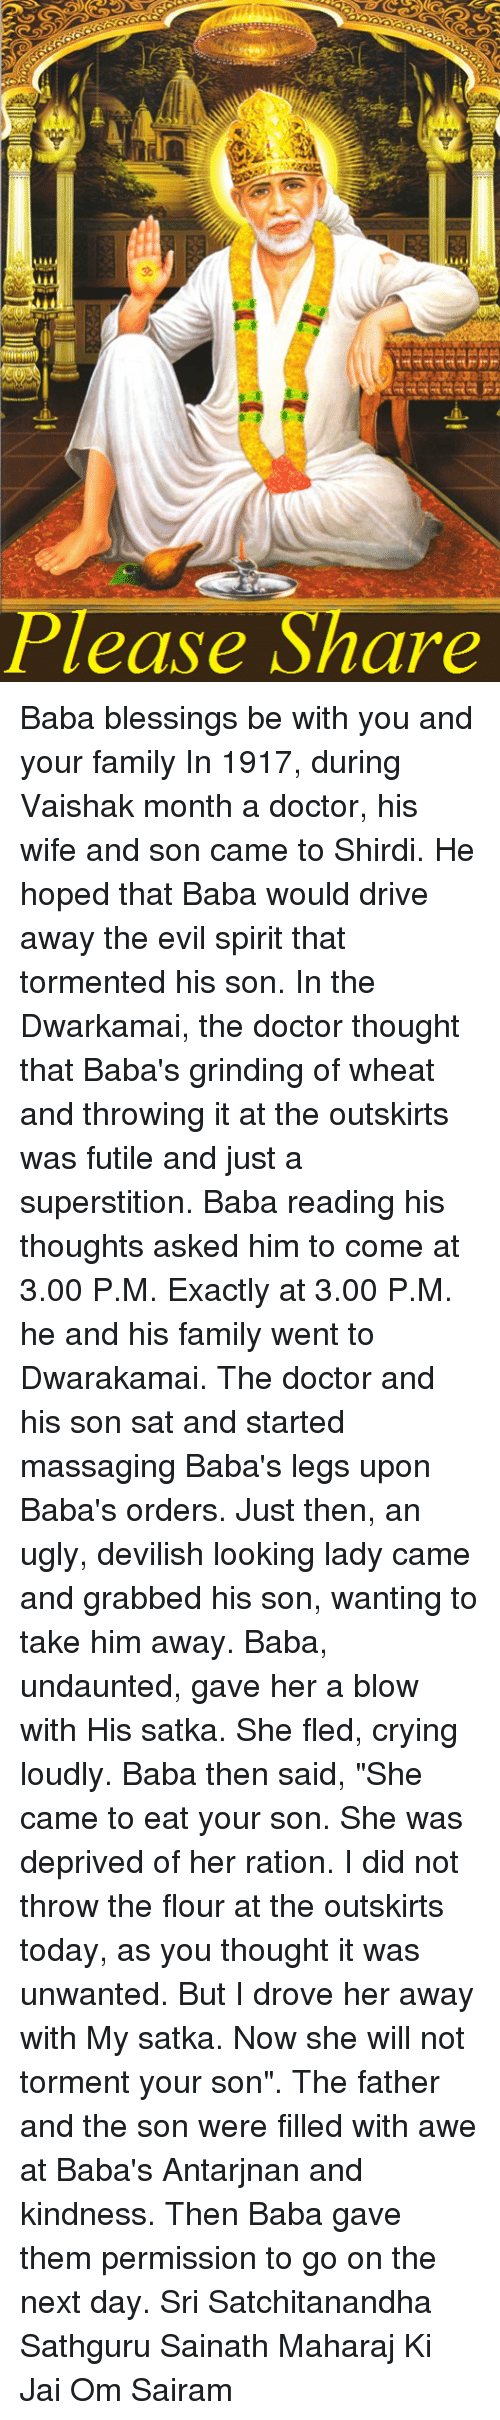 """rationalization: Please Share Baba blessings be with you and your family  In 1917, during Vaishak month a doctor, his wife and son came to Shirdi. He hoped that Baba would drive away the evil spirit that tormented his son. In the Dwarkamai, the doctor thought that Baba's grinding of wheat and throwing it at the outskirts was futile and just a superstition. Baba reading his thoughts asked him to come at 3.00 P.M. Exactly at 3.00 P.M. he and his family went to Dwarakamai. The doctor and his son sat and started massaging Baba's legs upon Baba's orders. Just then, an ugly, devilish looking lady came and grabbed his son, wanting to take him away. Baba, undaunted, gave her a blow with His satka. She fled, crying loudly. Baba then said, """"She came to eat your son. She was deprived of her ration. I did not throw the flour at the outskirts today, as you thought it was unwanted. But I drove her away with My satka. Now she will not torment your son"""". The father and the son were filled with awe at Baba's Antarjnan and kindness. Then Baba gave them permission to go on the next day.  Sri Satchitanandha Sathguru Sainath Maharaj Ki Jai Om Sairam"""